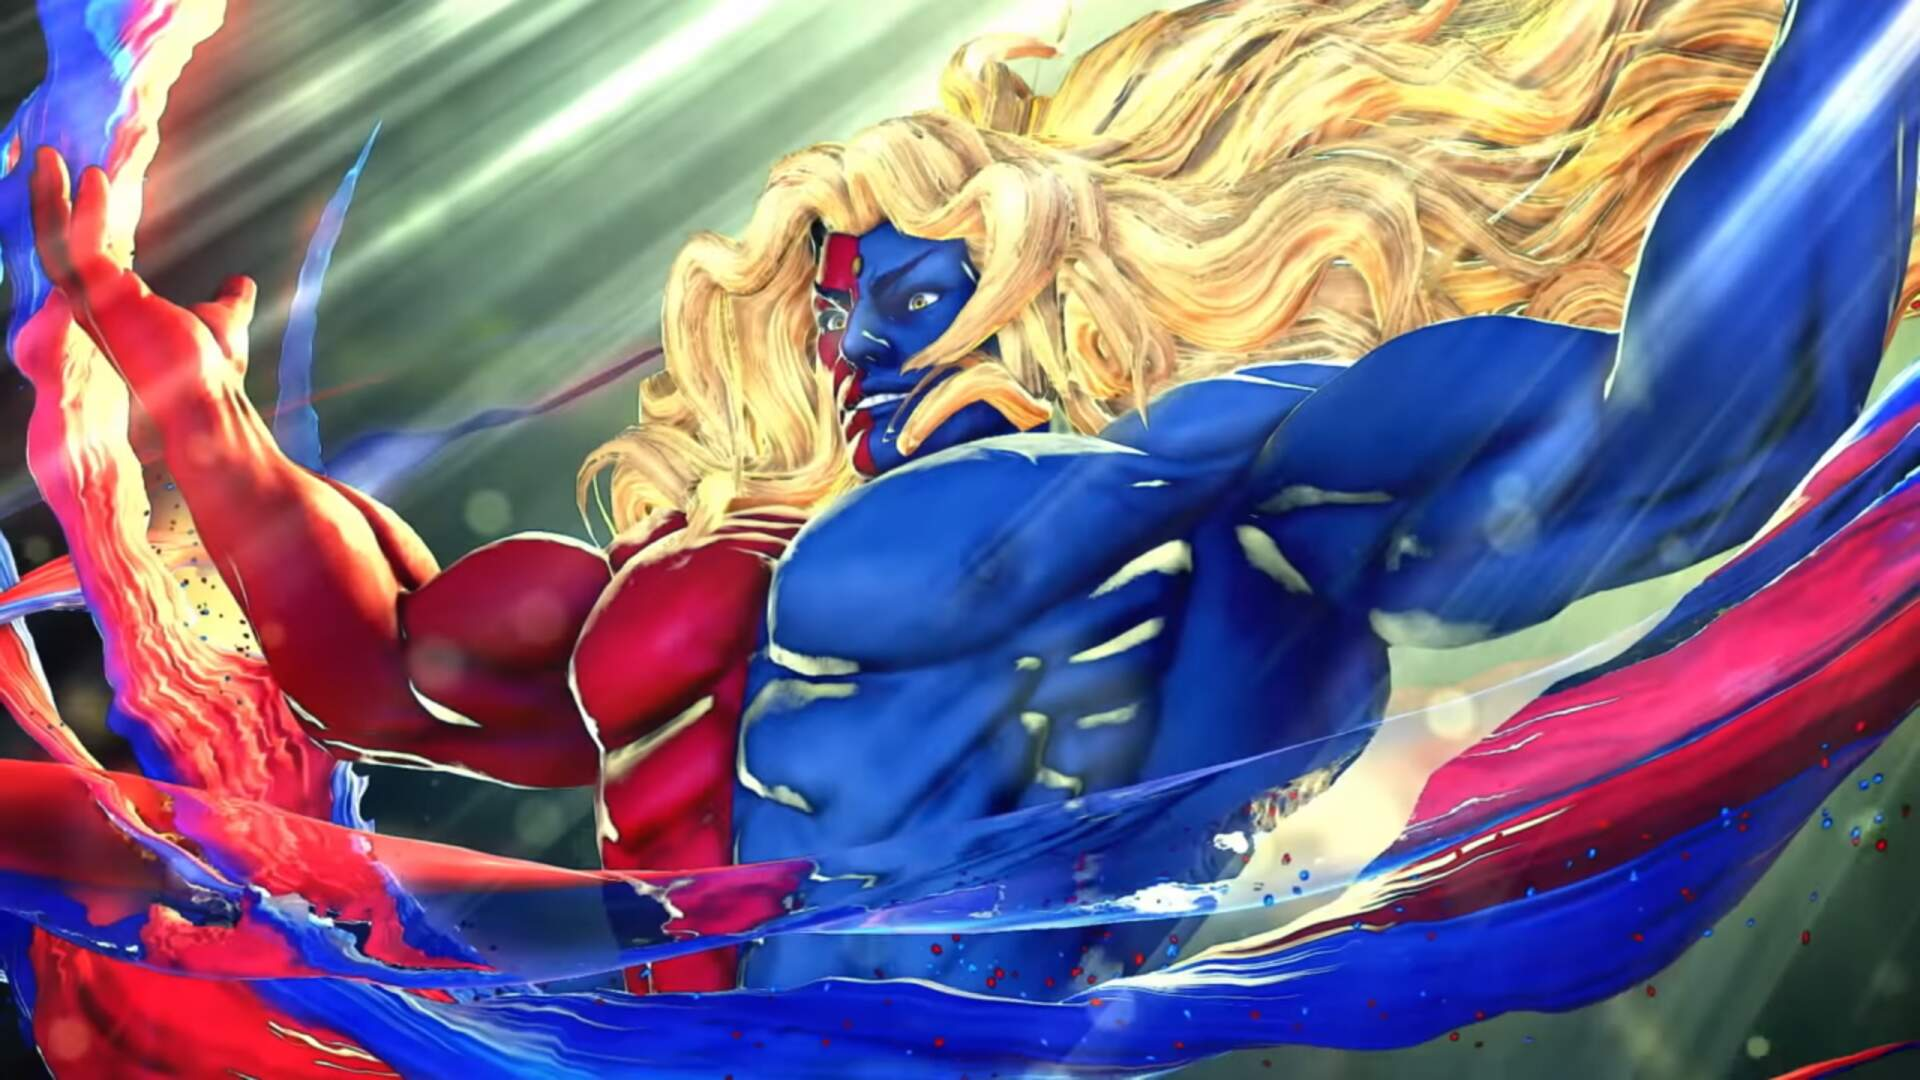 Street Fighter 5 Got a Vague Netcode Update, and the Community Is Hunting for Differences [Update]